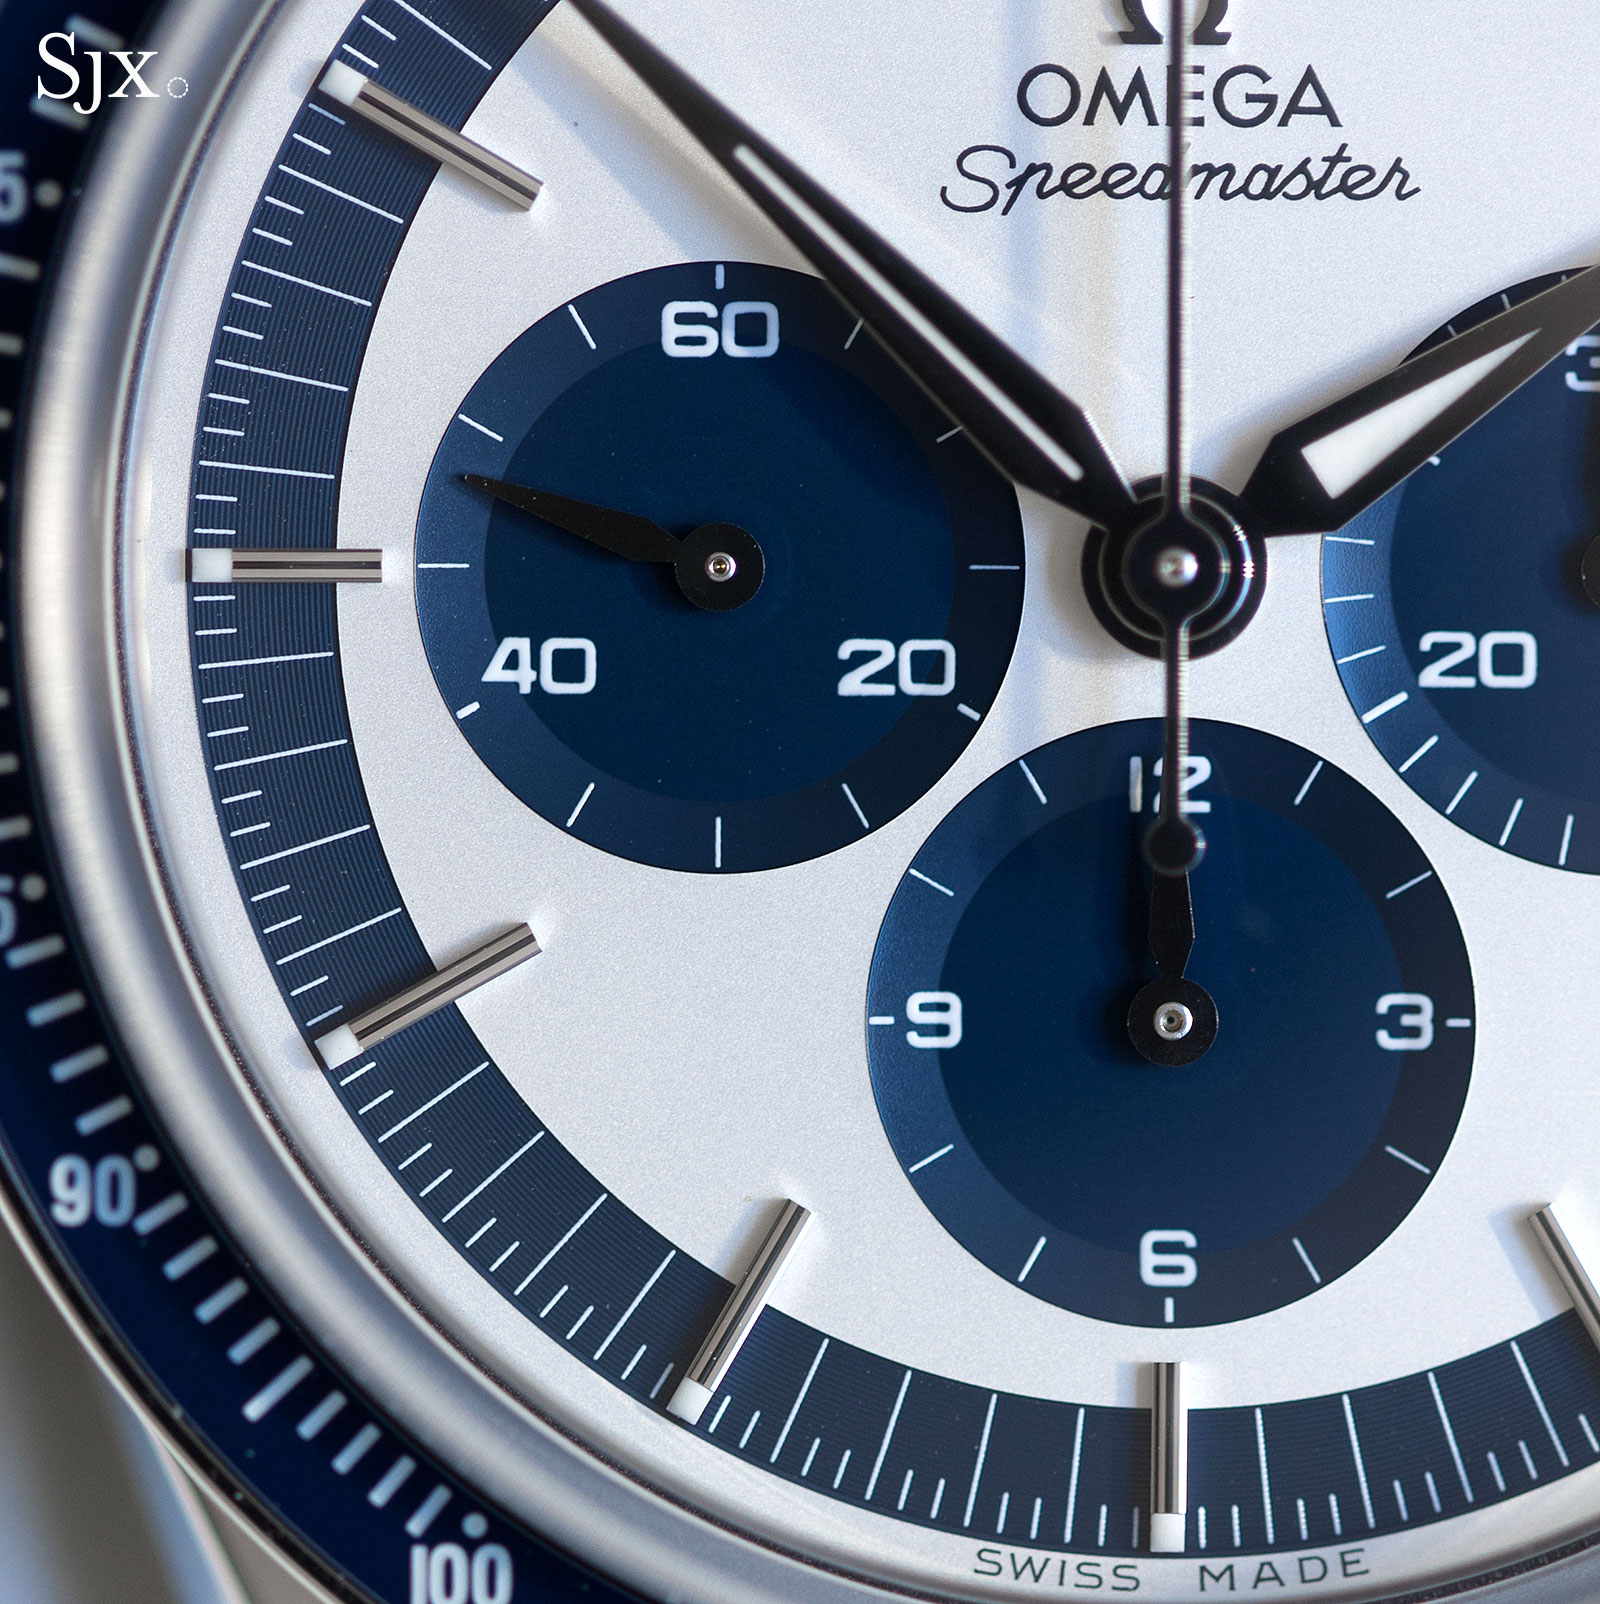 Omega Speedmaster Moonwatch CK2998 - 1